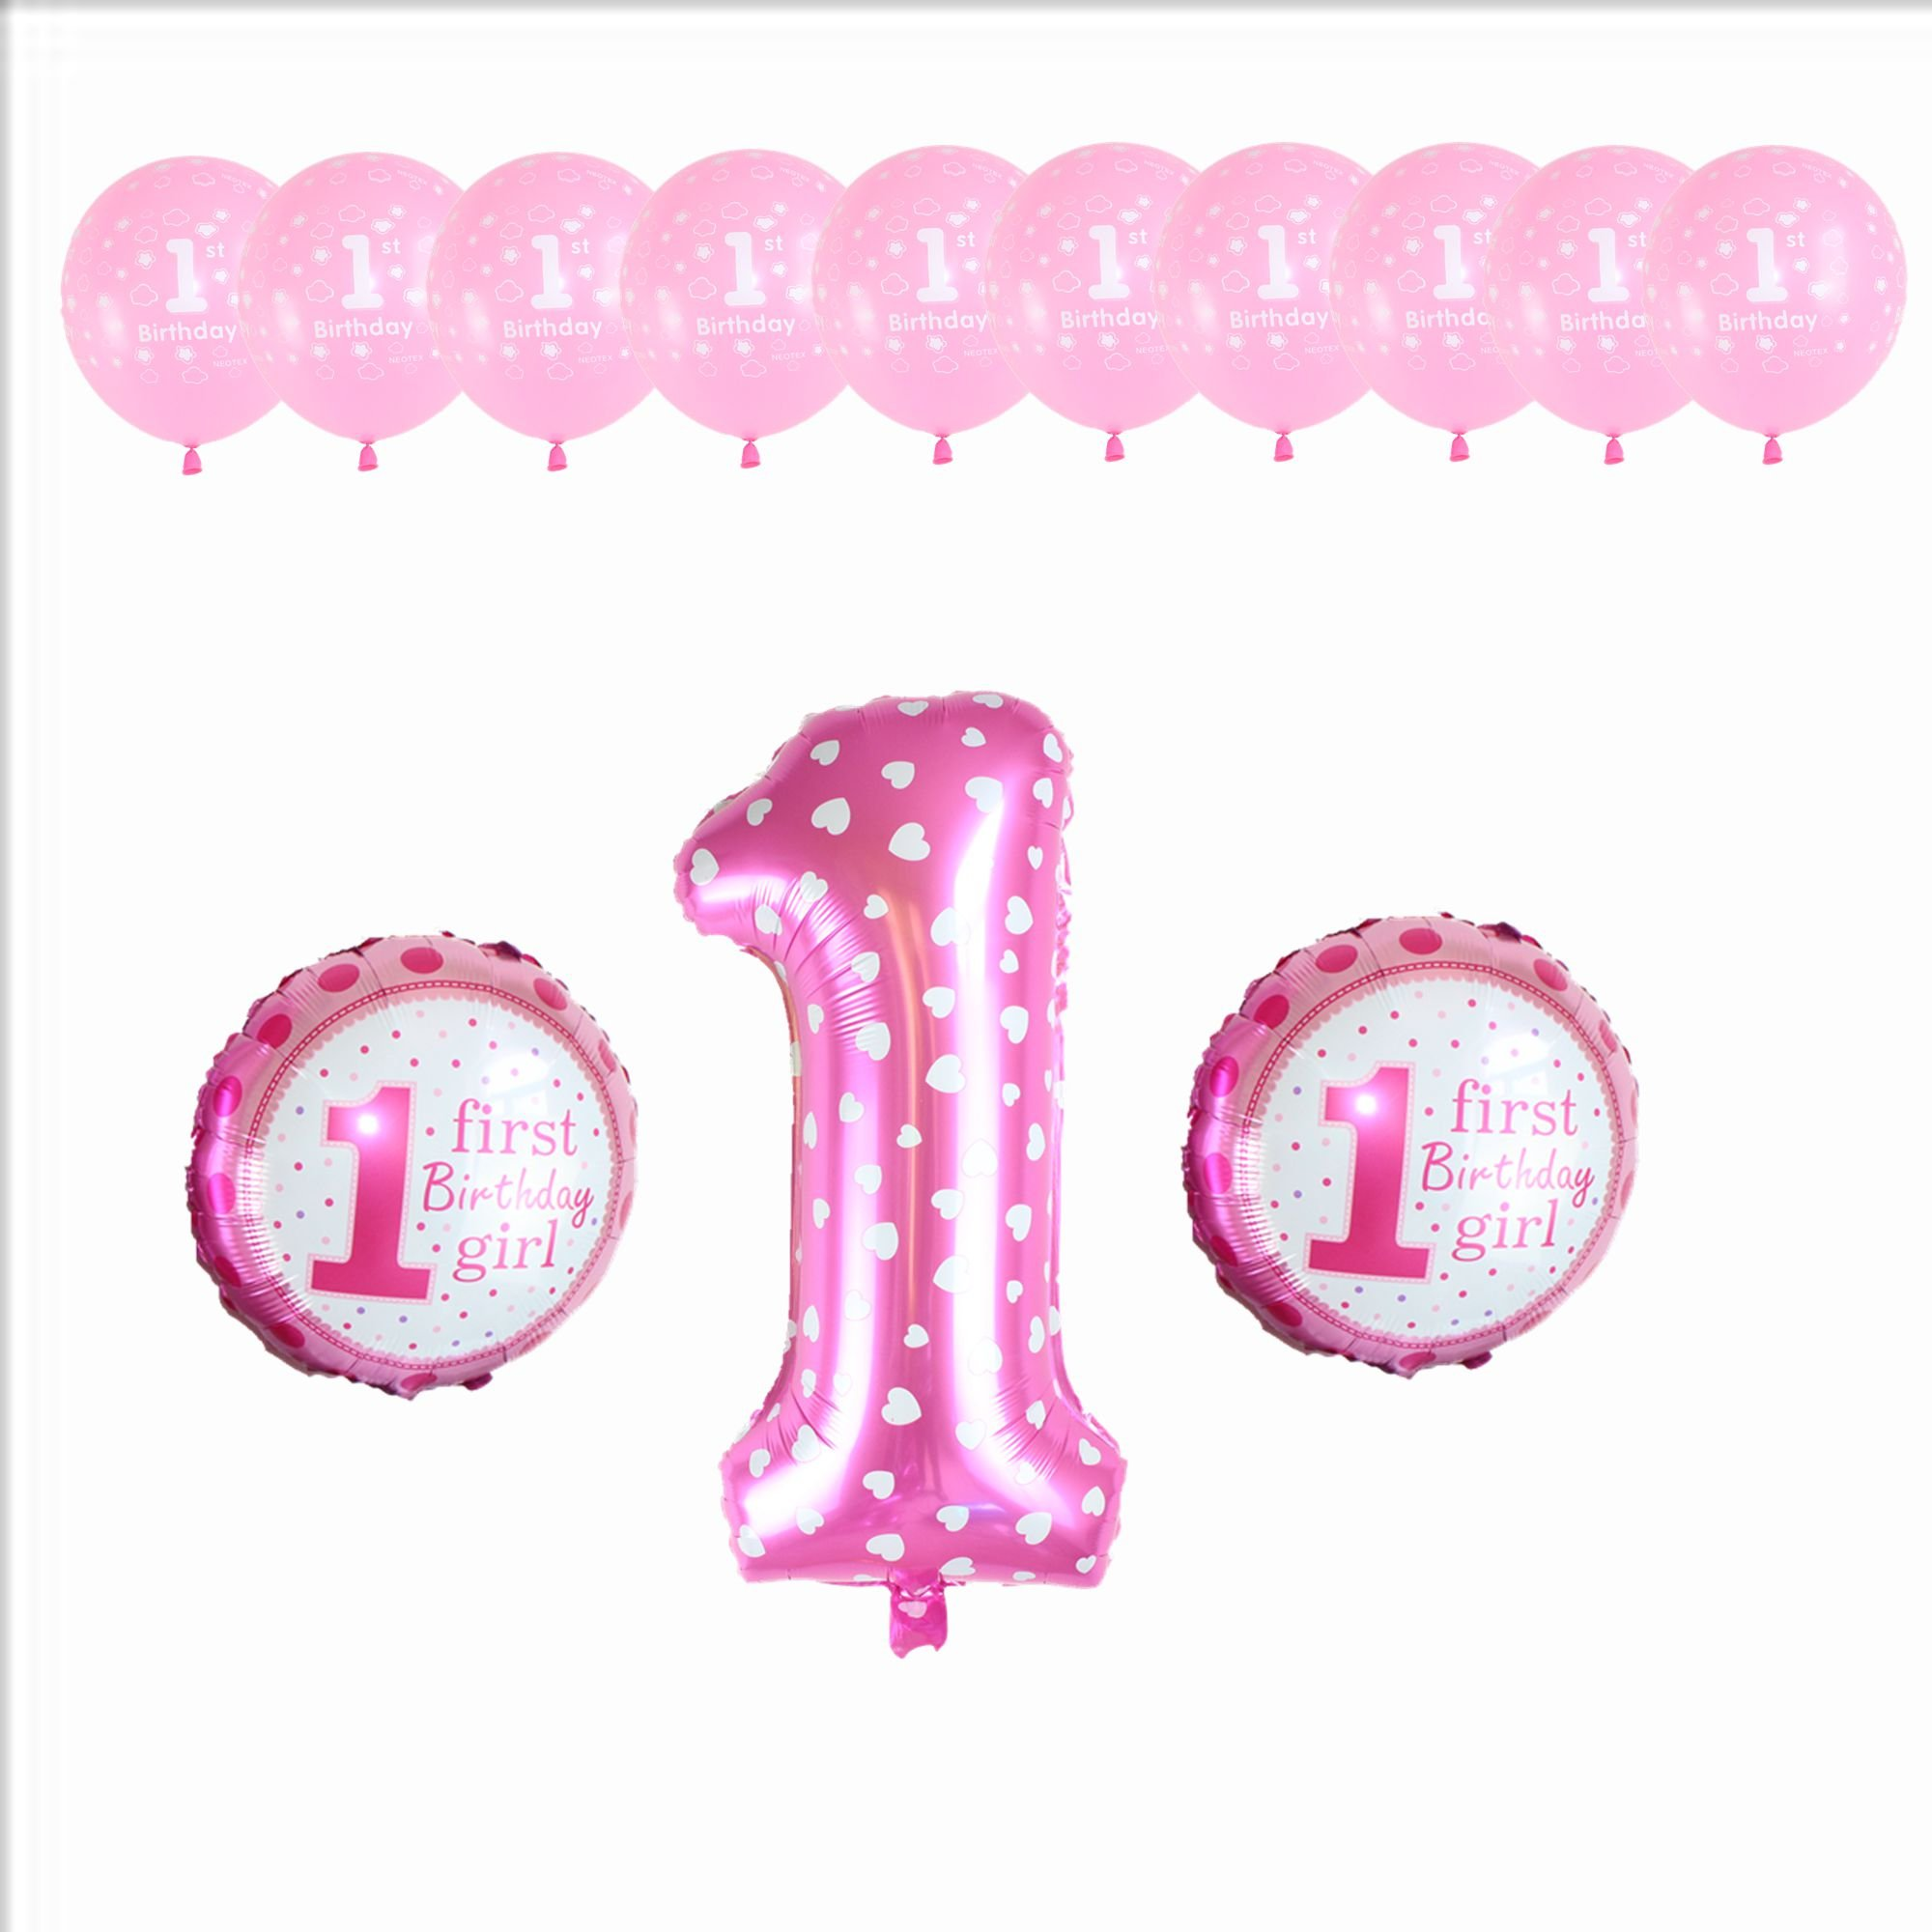 1 Year Old Birthday Party Decorations Baby Boy Girl Pink Blue Latex Foil Balloons (42INCH, Pink)